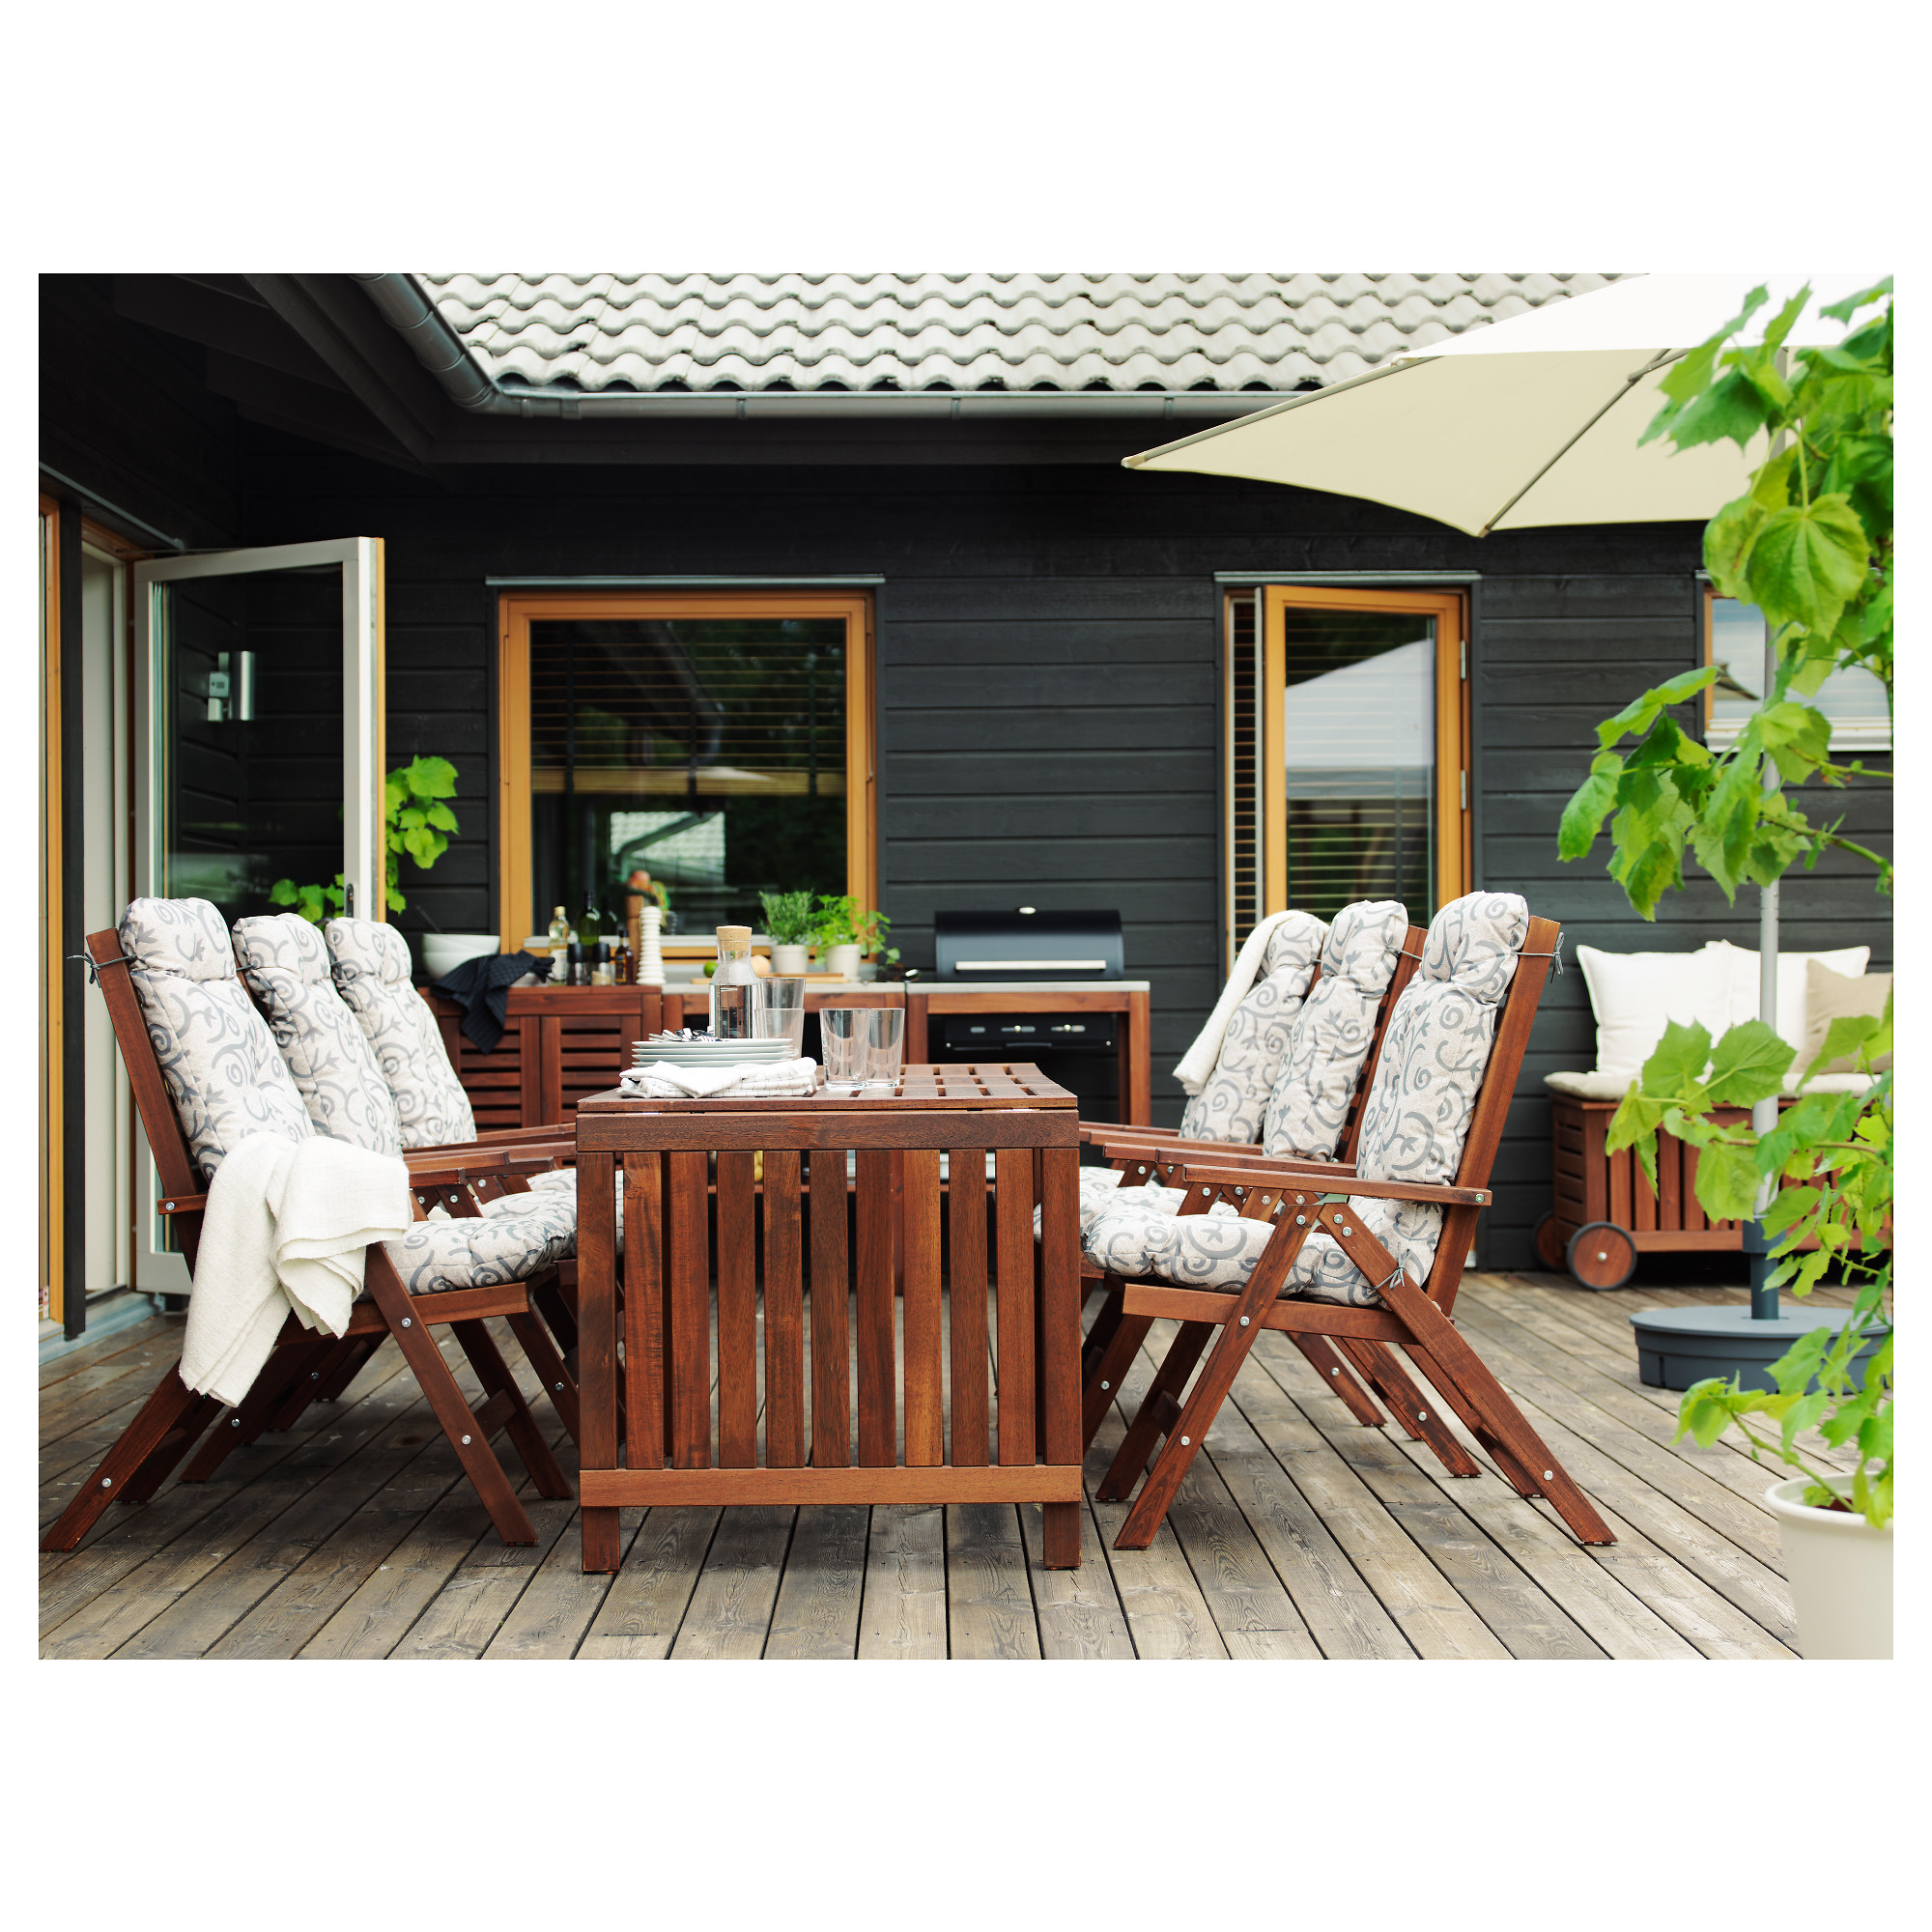 pplar drop leaf table outdoor ikea rh ikea com ikea outdoor furniture singapore ikea outdoor furniture canada